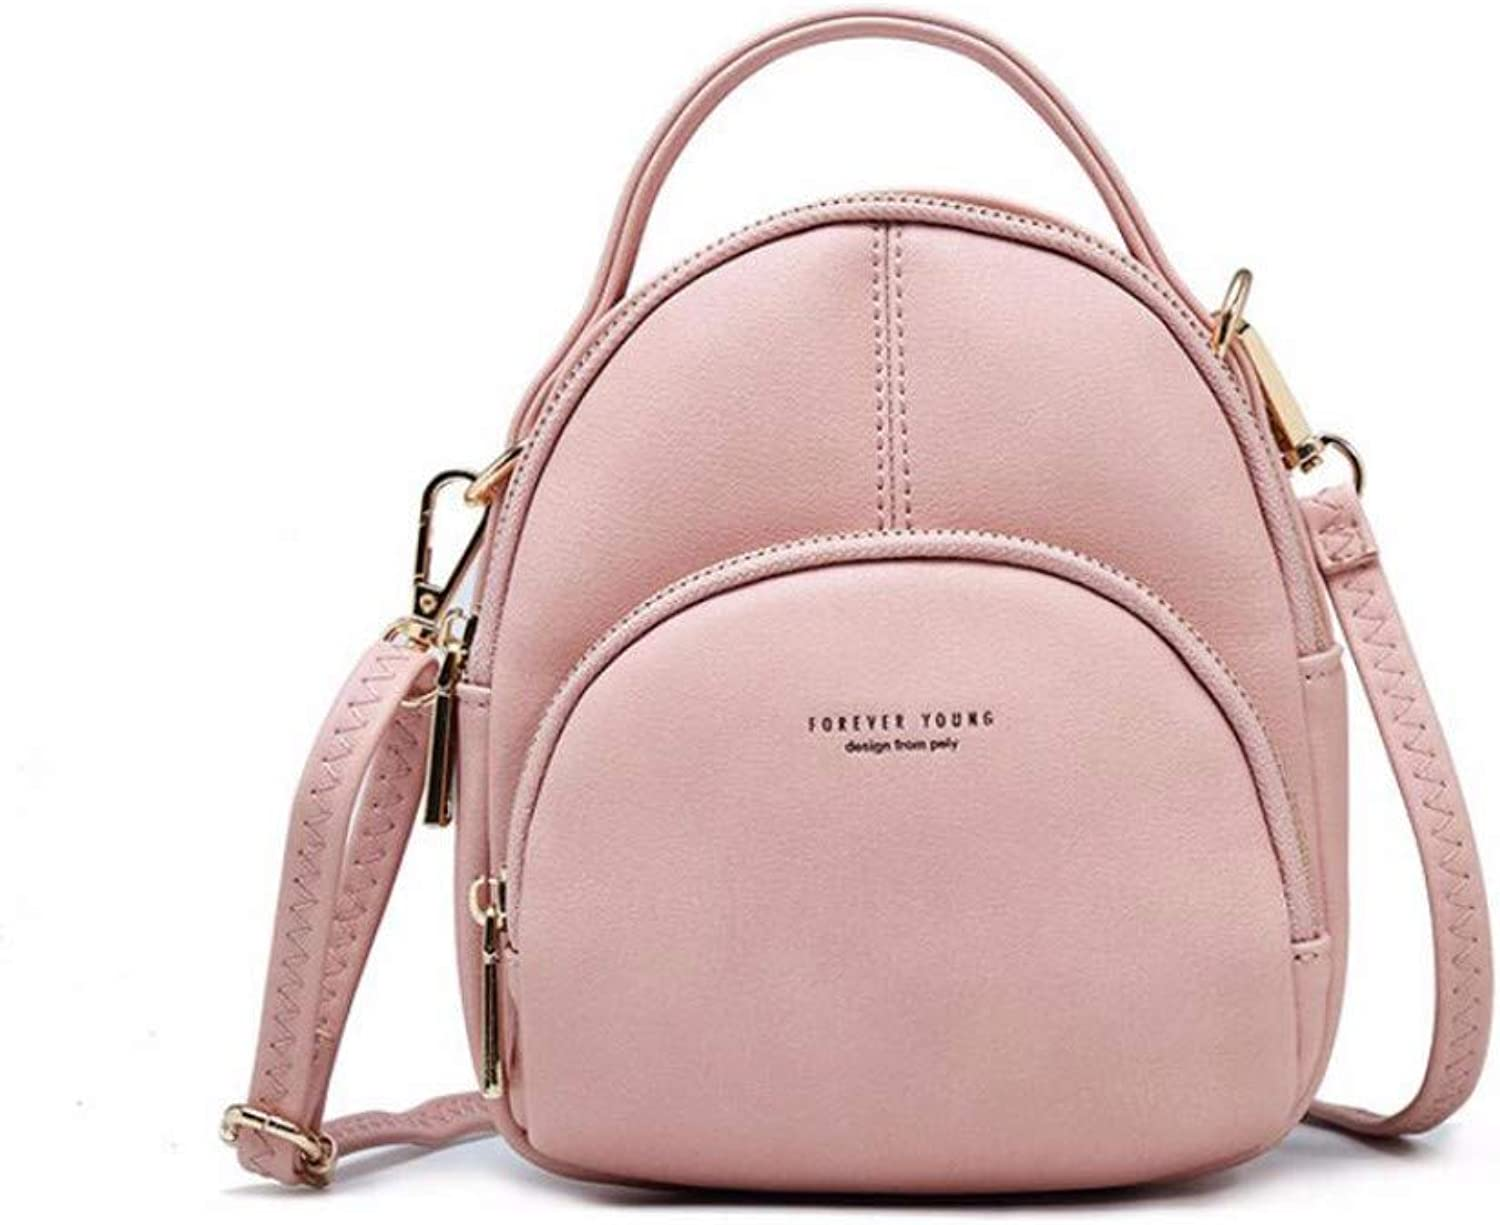 Fashion Single-Shoulder Bag Inclined Straddle Bag Multi-Functional Lady's Shoulder Bag Multi-Functional Small Backpack Handbag